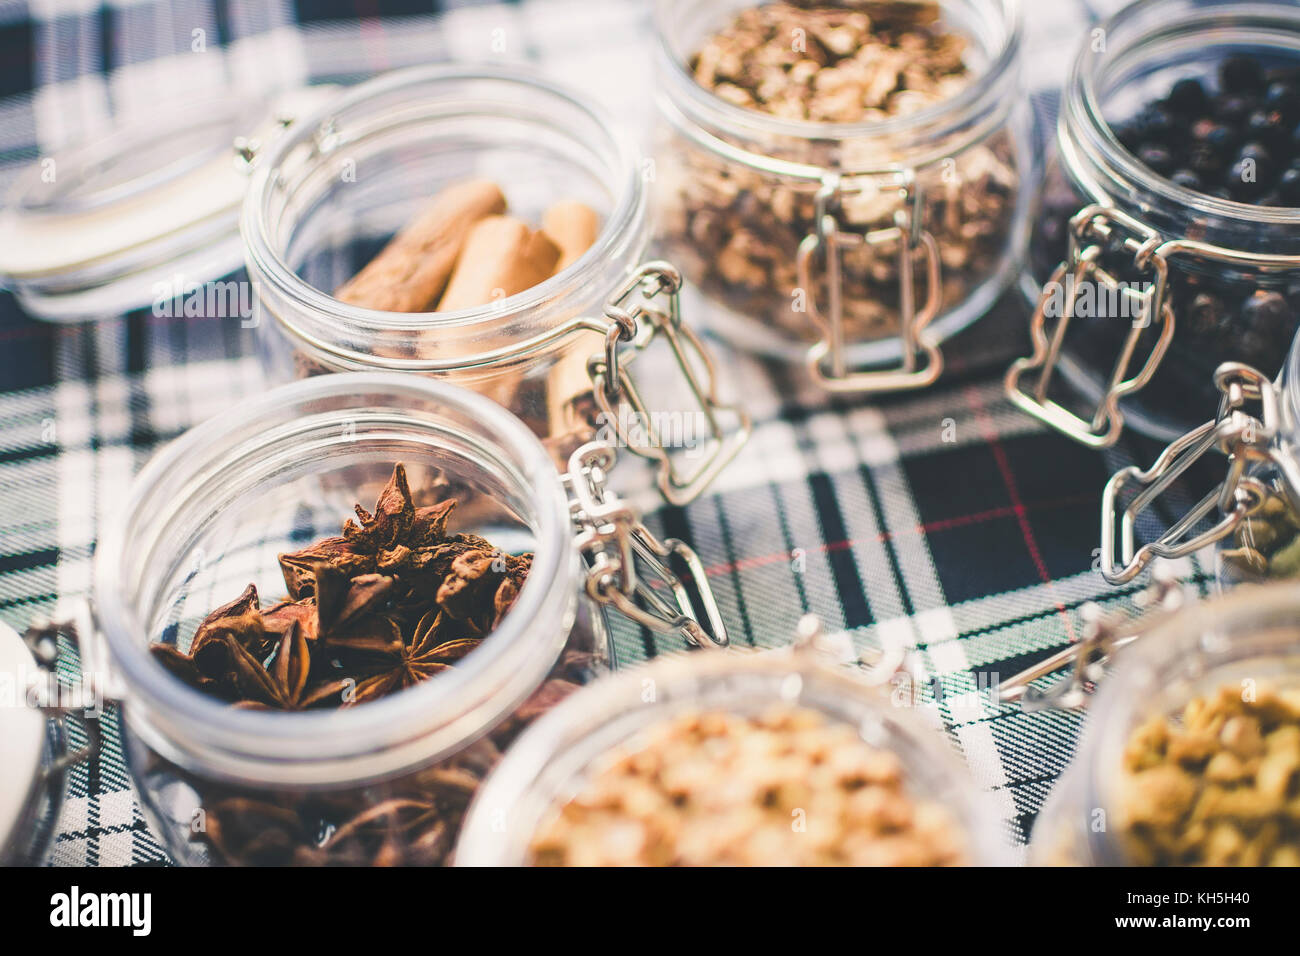 Whisky and Gin Ingredients in glass jar on blue and white tartan - Stock Image